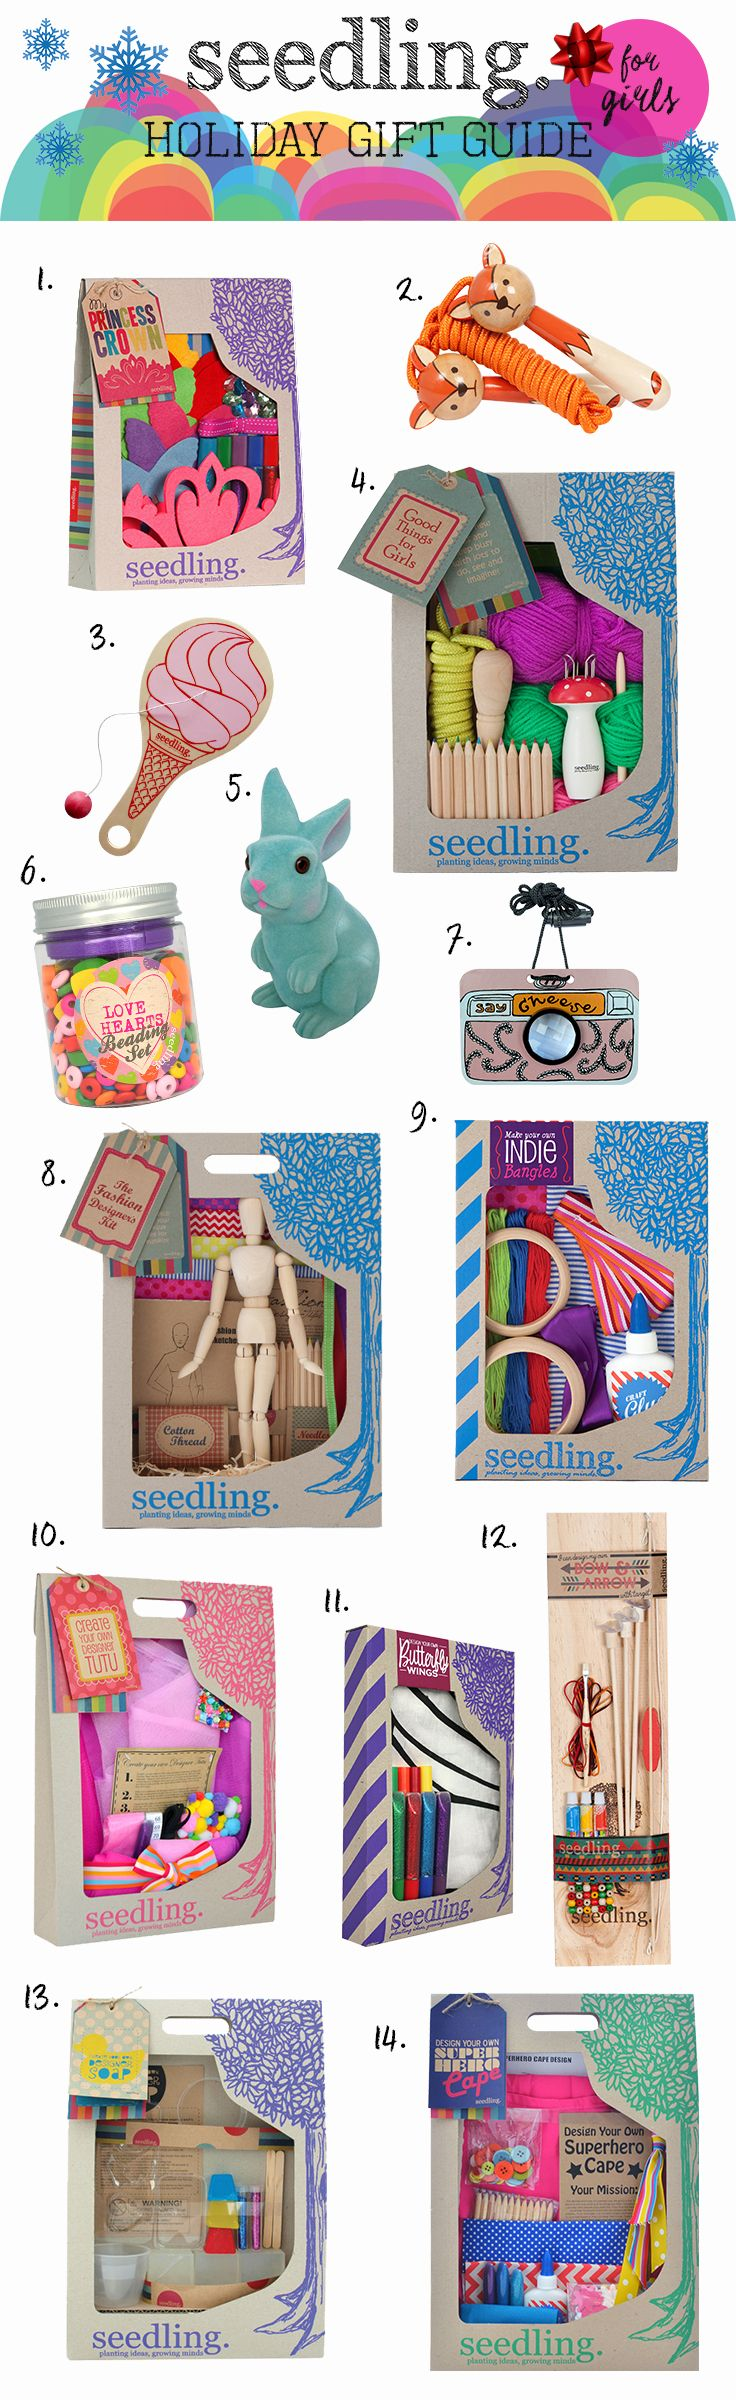 Seedling Gift Guide for Girls | 1. My Princess Crown 2. Fox Skipping Rope 3. We All Scream for Ice Cream Paddle Ball 4. Good Things for Girls 5. Bunny Money Box 6. Love Hearts Beading Kit 7. Vintage Kaleidoscope Camera 8. The Fashion Designer's Kit 9. Make Your Own Indie Bangles 10. Create Your Own Designer Tutu 11. Design Your Own  Butterfly Wings 12. I Can Design My Own Bow & Arrow 13. Create Your Own Designer Soap 14. Design Your Own Superhero Cape | www.seedling.com